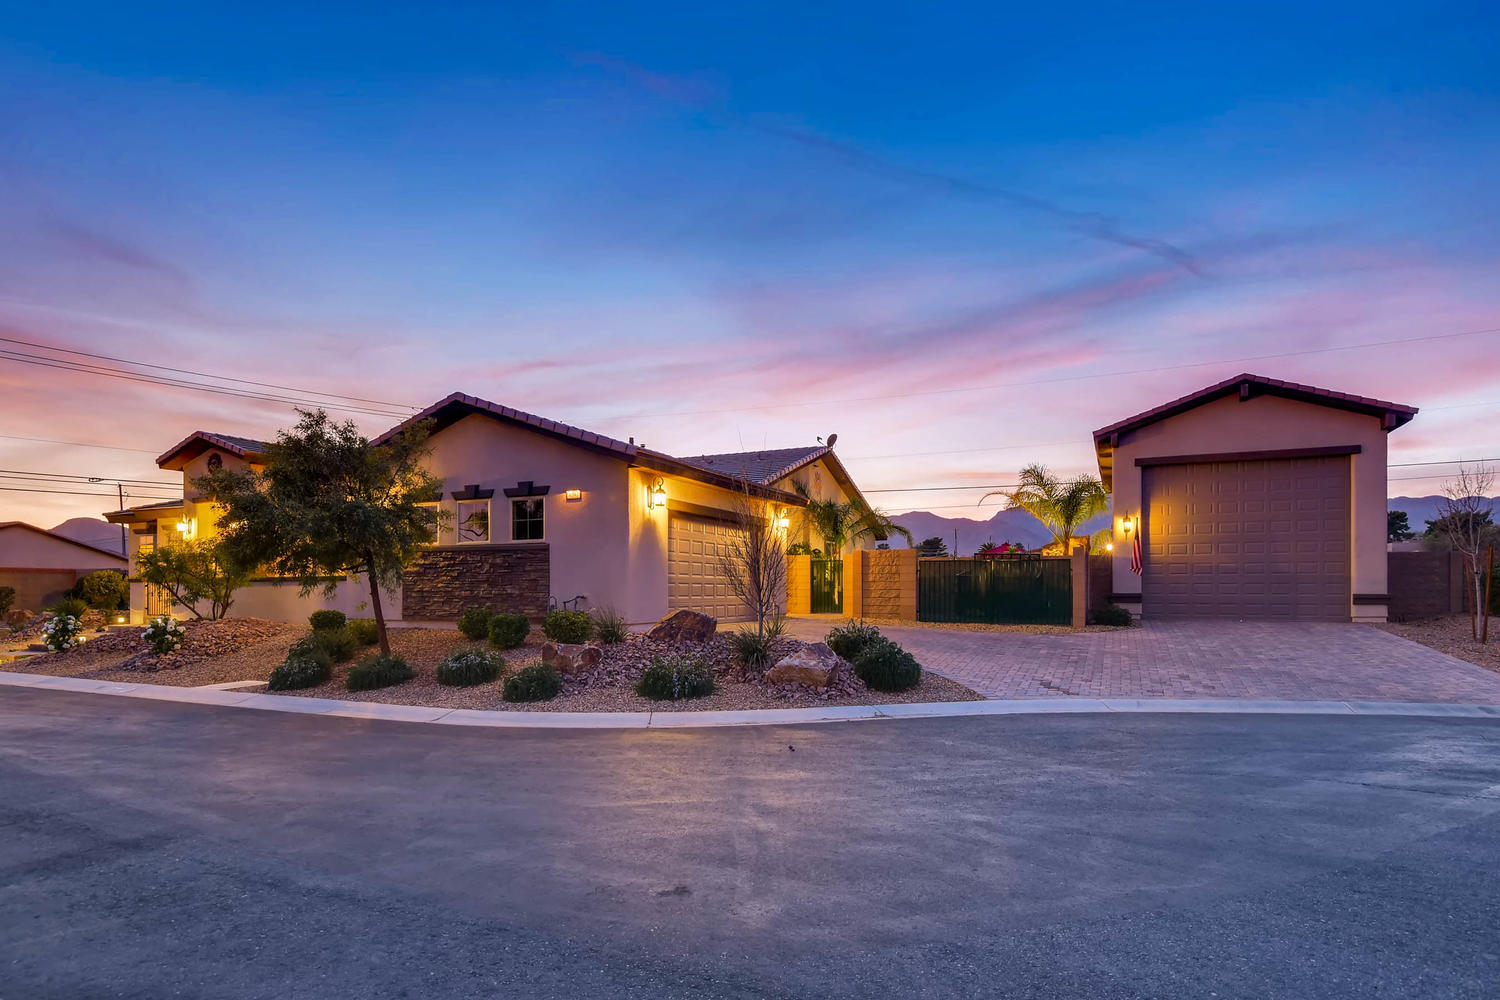 Summerlin & Las Vegas homes with RV Parking